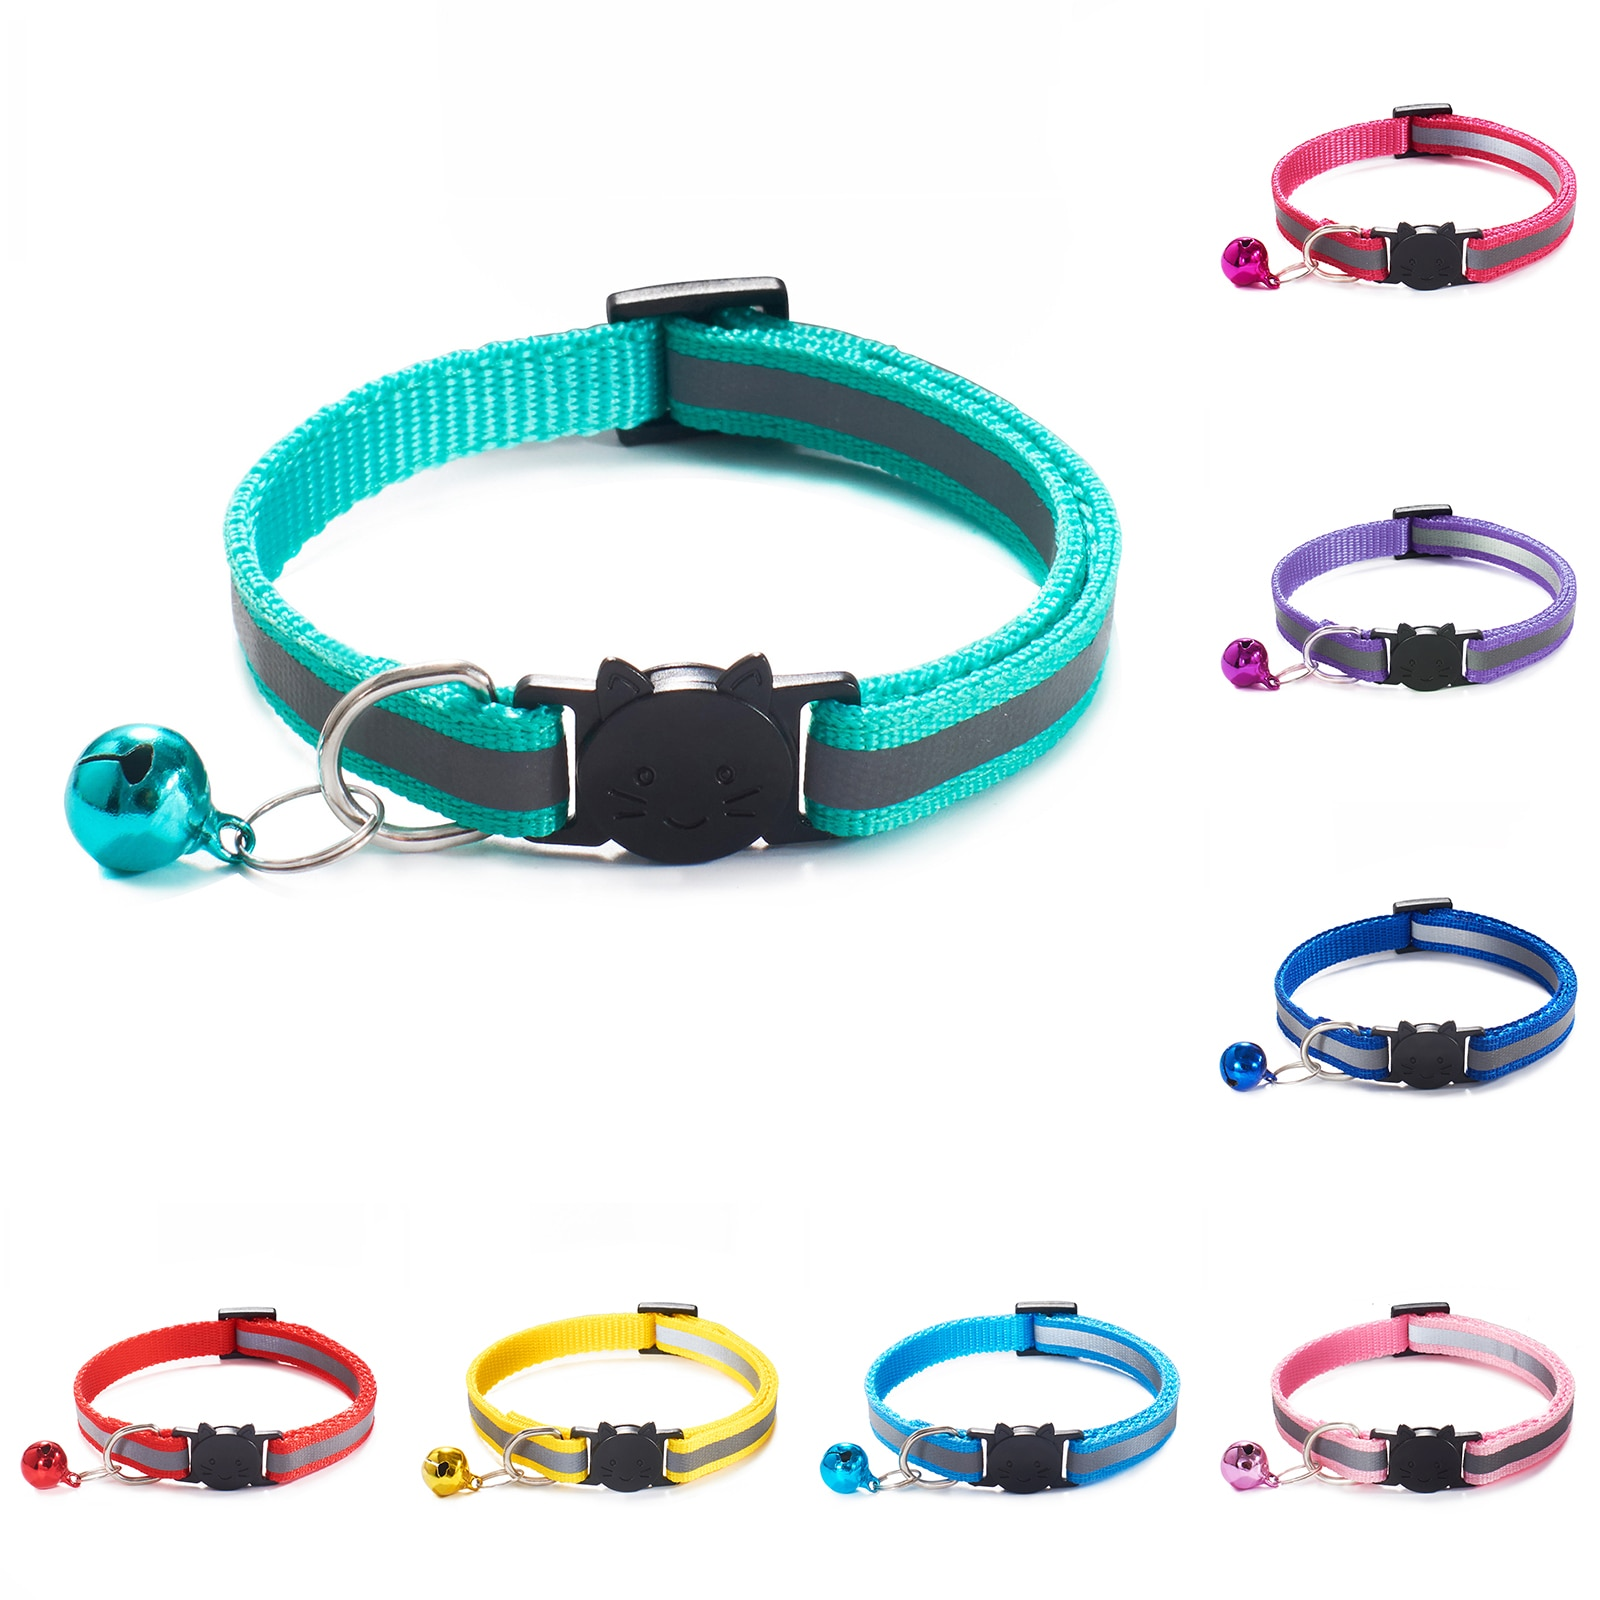 New Colors Reflective Breakaway Cat Collar Neck Ring Necklace Bell Pet Products Safety Elastic Adjustable With Soft Material 1PC colorful cute dog pet glossy reflective collar safety buckle bell strap 6 colors adjustable strap